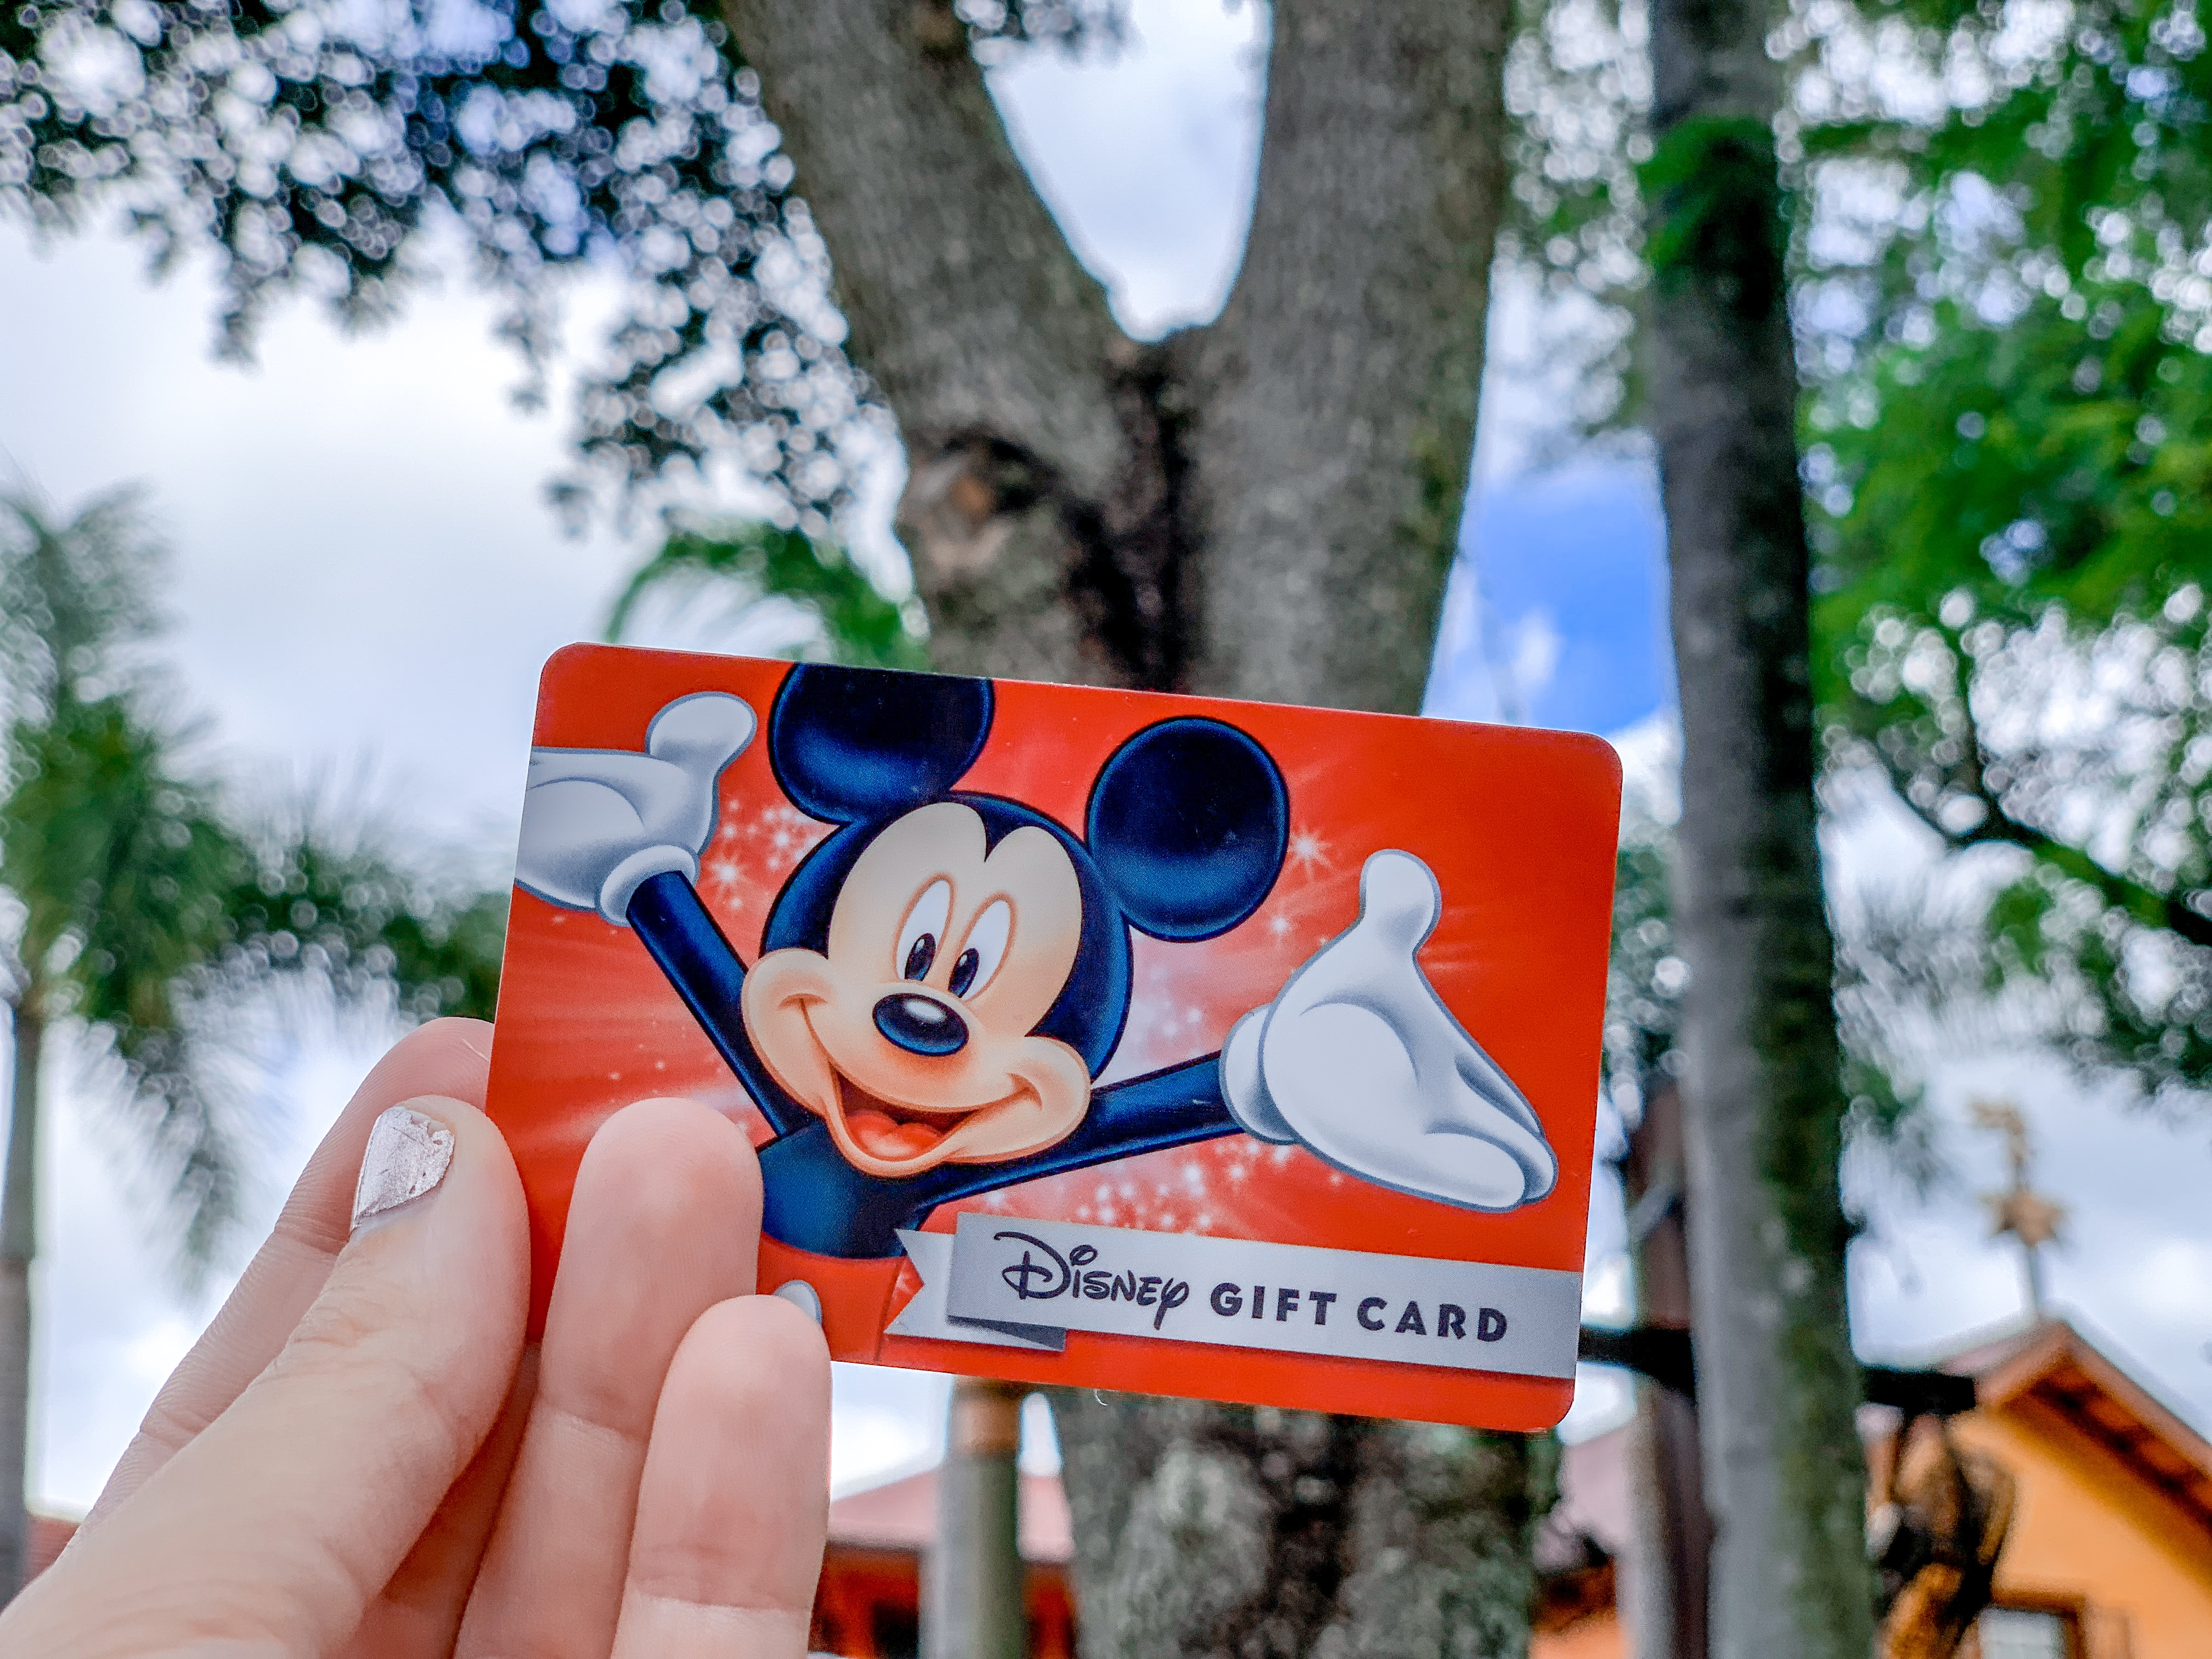 How to save money at Disney - buy discounted gift cards.